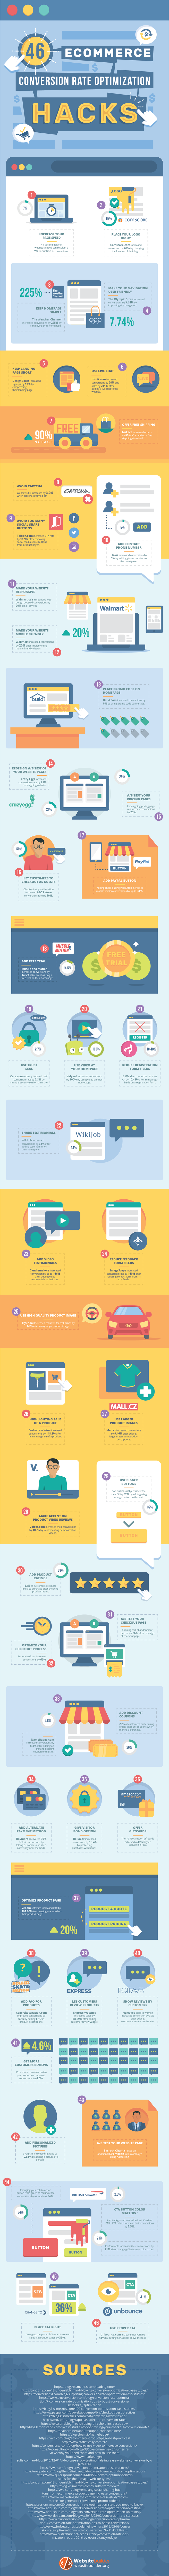 The Essential List of 46 Ecommerce Conversion Rate Optimization Hacks - Infographic